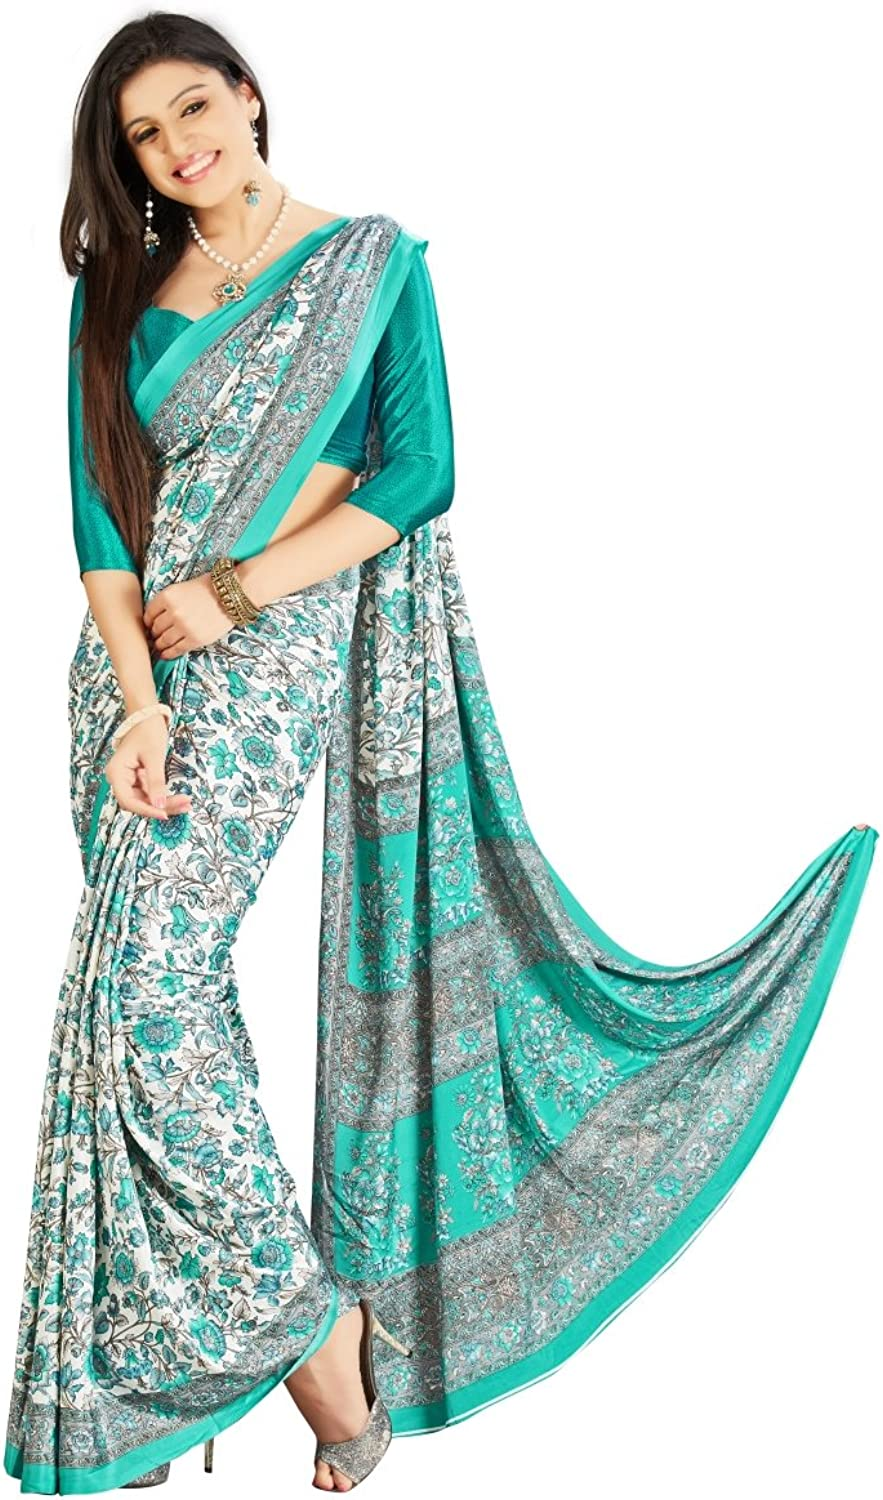 Triveni Majestic Off White colord Printed Crape Silk Saree 704B